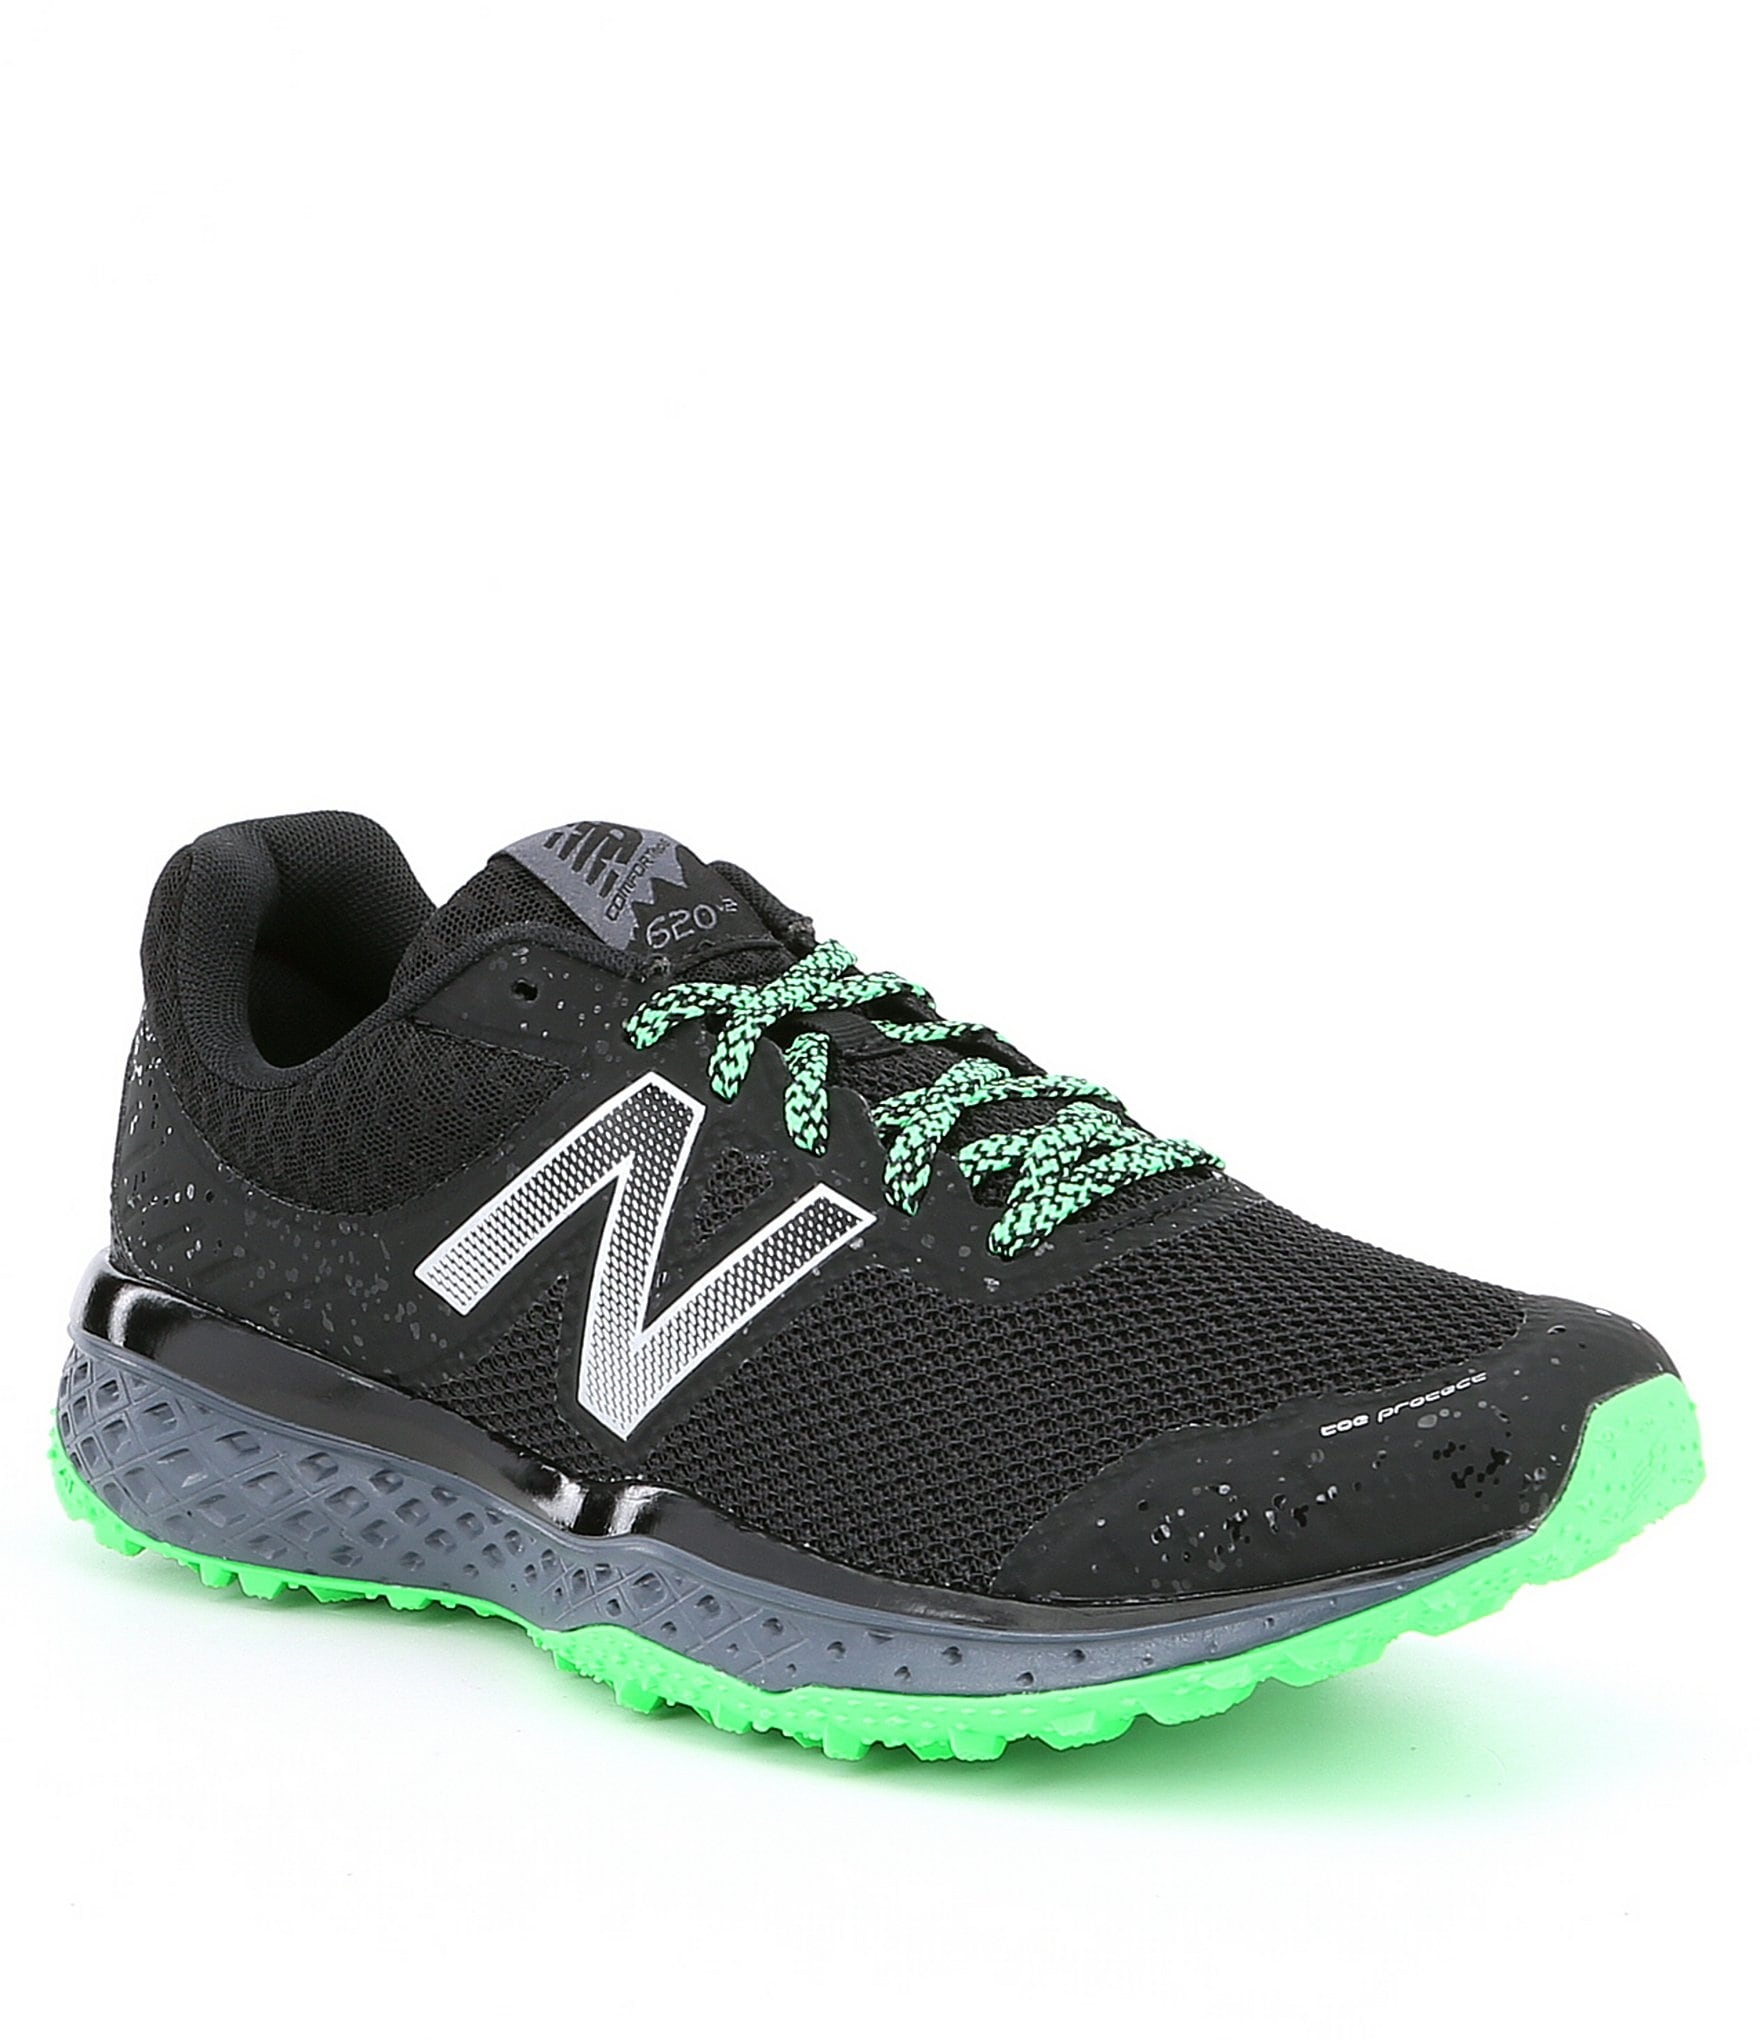 New balance vazee rush v2 mens running shoes black multi online - New Balance Vazee Rush V2 Mens Running Shoes Black Multi Online 69